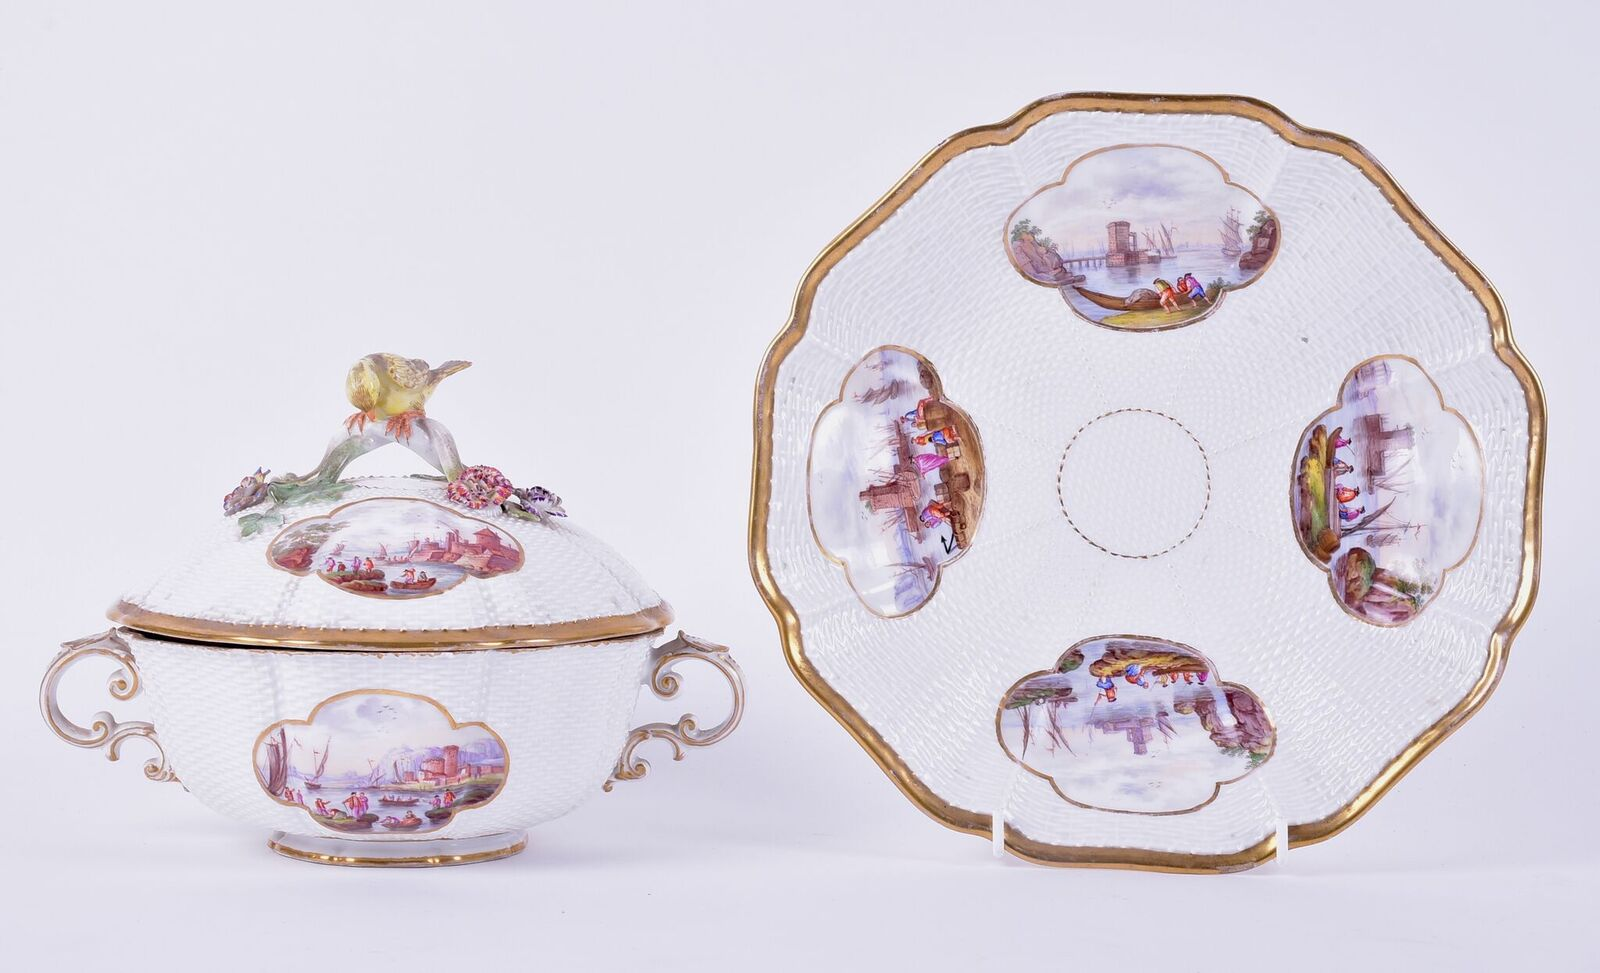 Lot 253: An 18th century Meissen porcelain lidded tureen, together with a serving dish